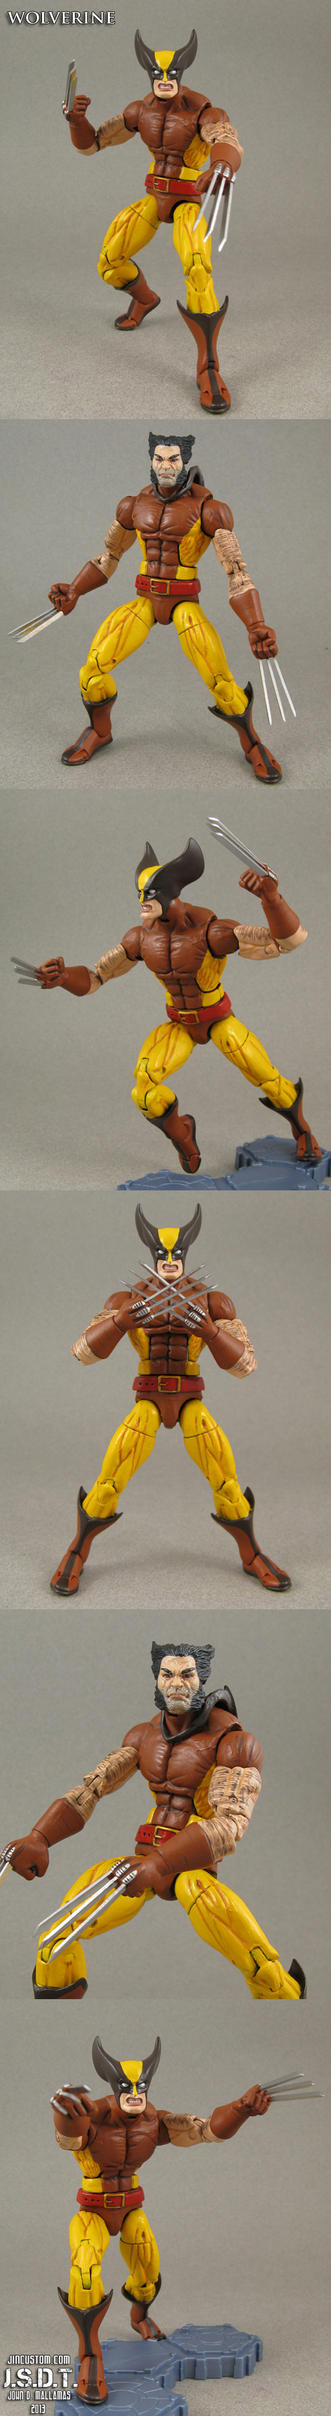 Custom X-Men Arcade Wolverine Figure by Jin-Saotome